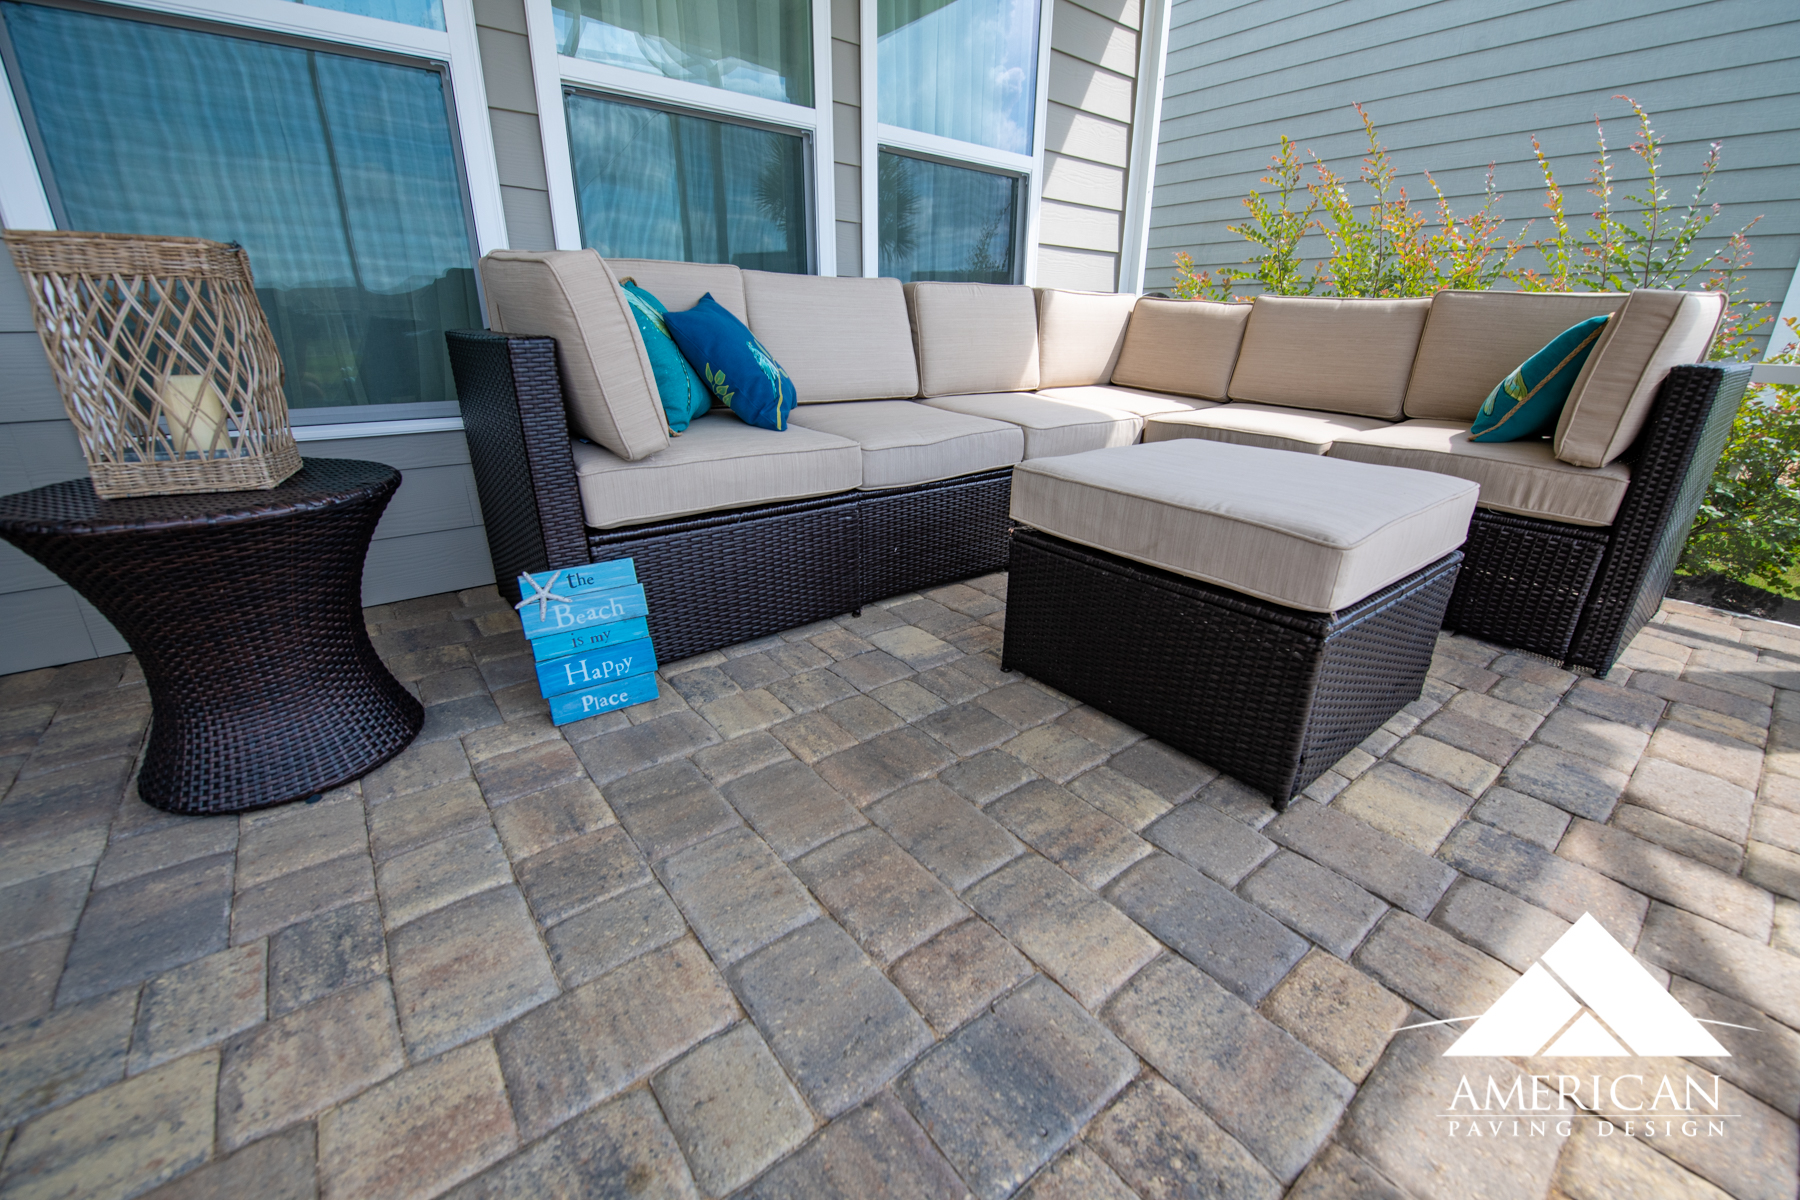 Tan polysand was installed in between the joints of this lanai paver patio. Perfect for reading and relaxing, this homeowner will have little repair issues when it comes to her new paver patio!